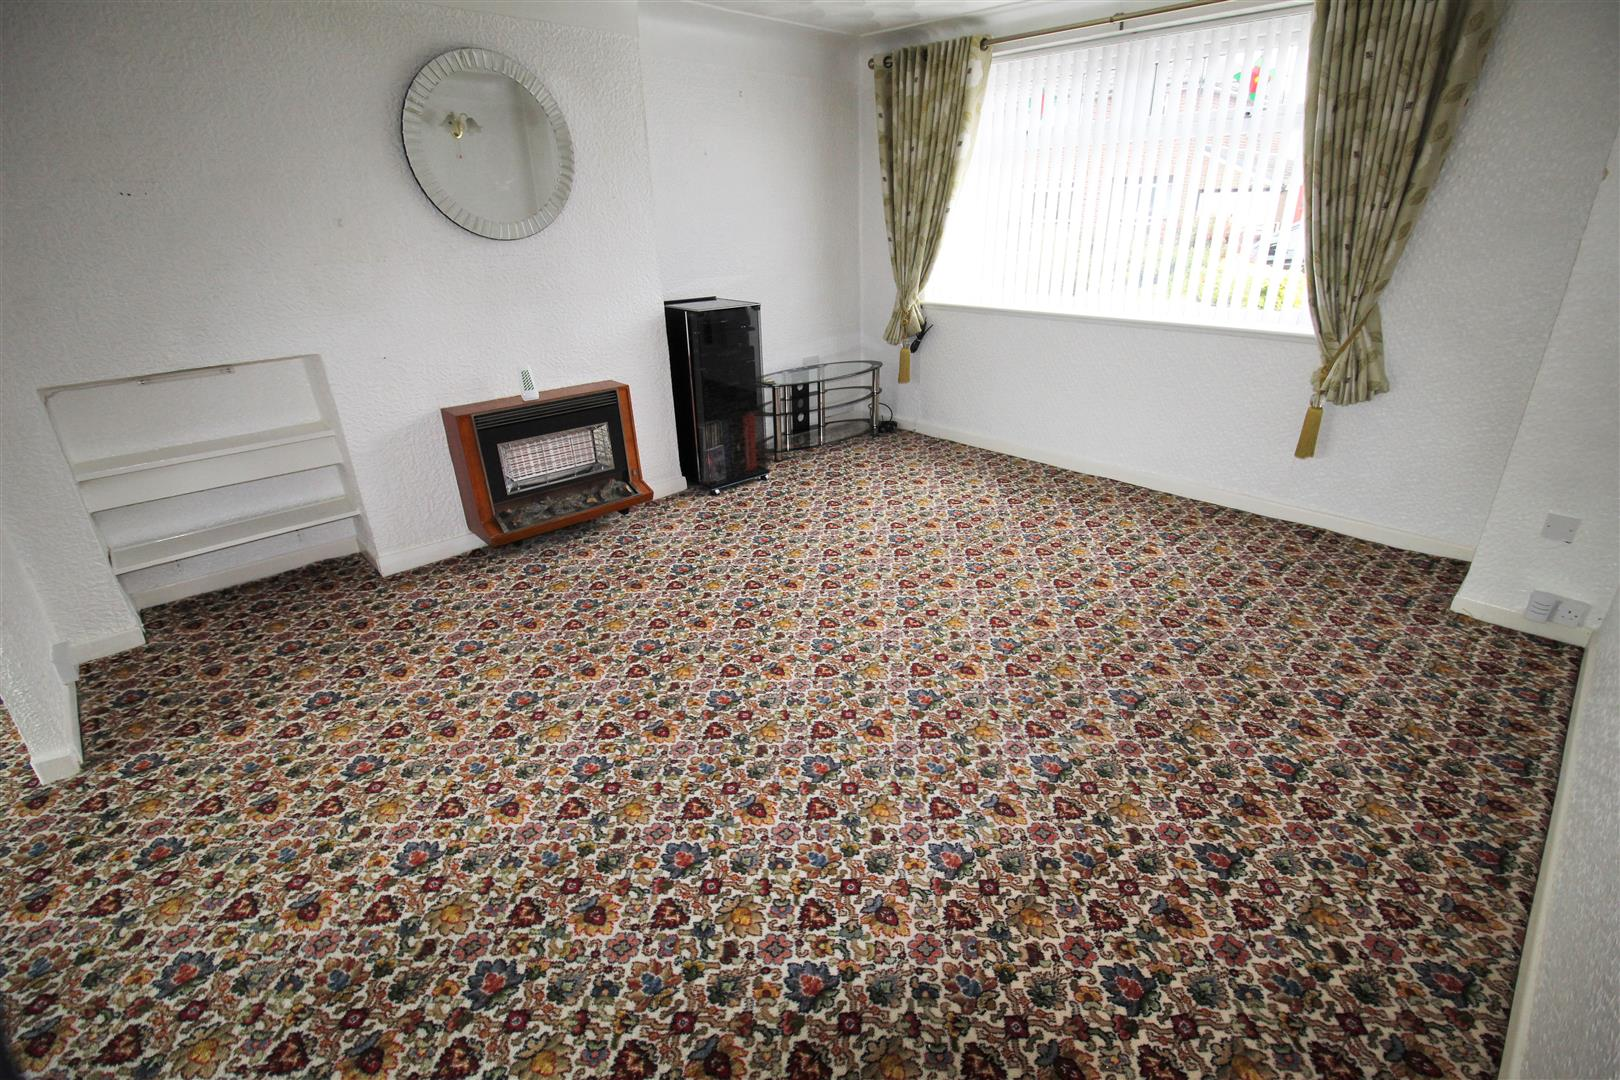 3 Bedrooms, House - Semi-Detached, Uppingham Avenue, Aintree Village, Liverpool